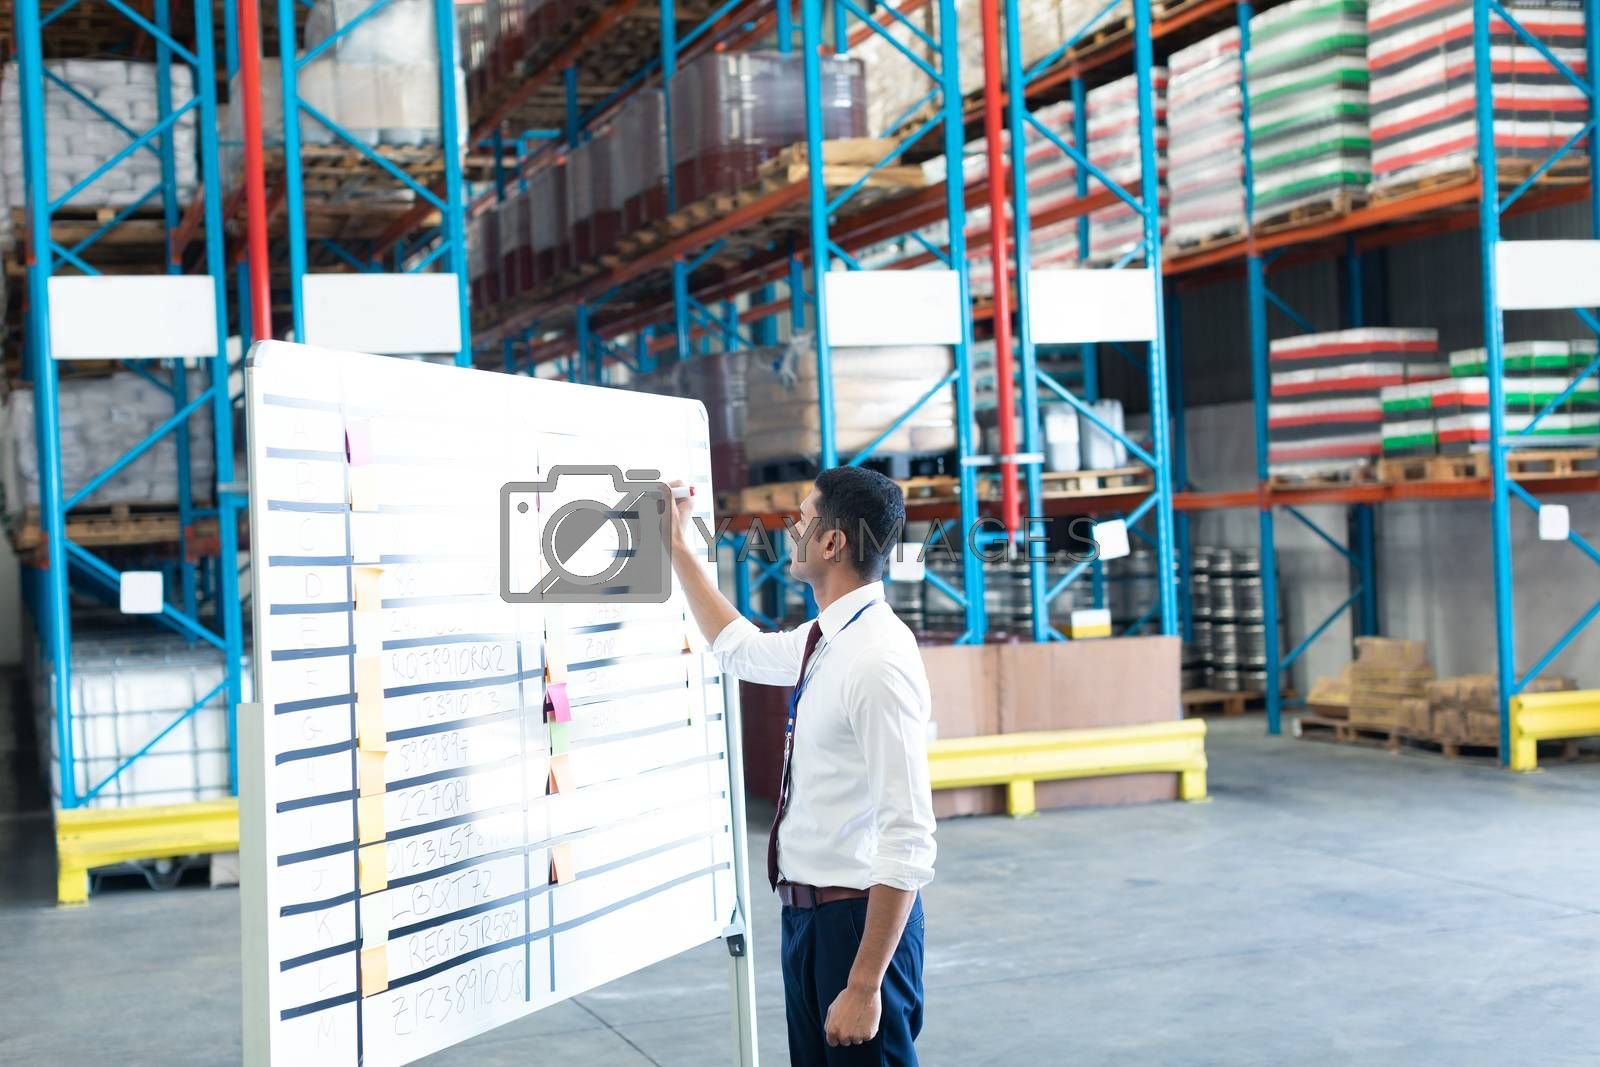 Side view of handsome young Caucasian male staff writing on sticky notes in warehouse. This is a freight transportation and distribution warehouse. Industrial and industrial workers concept